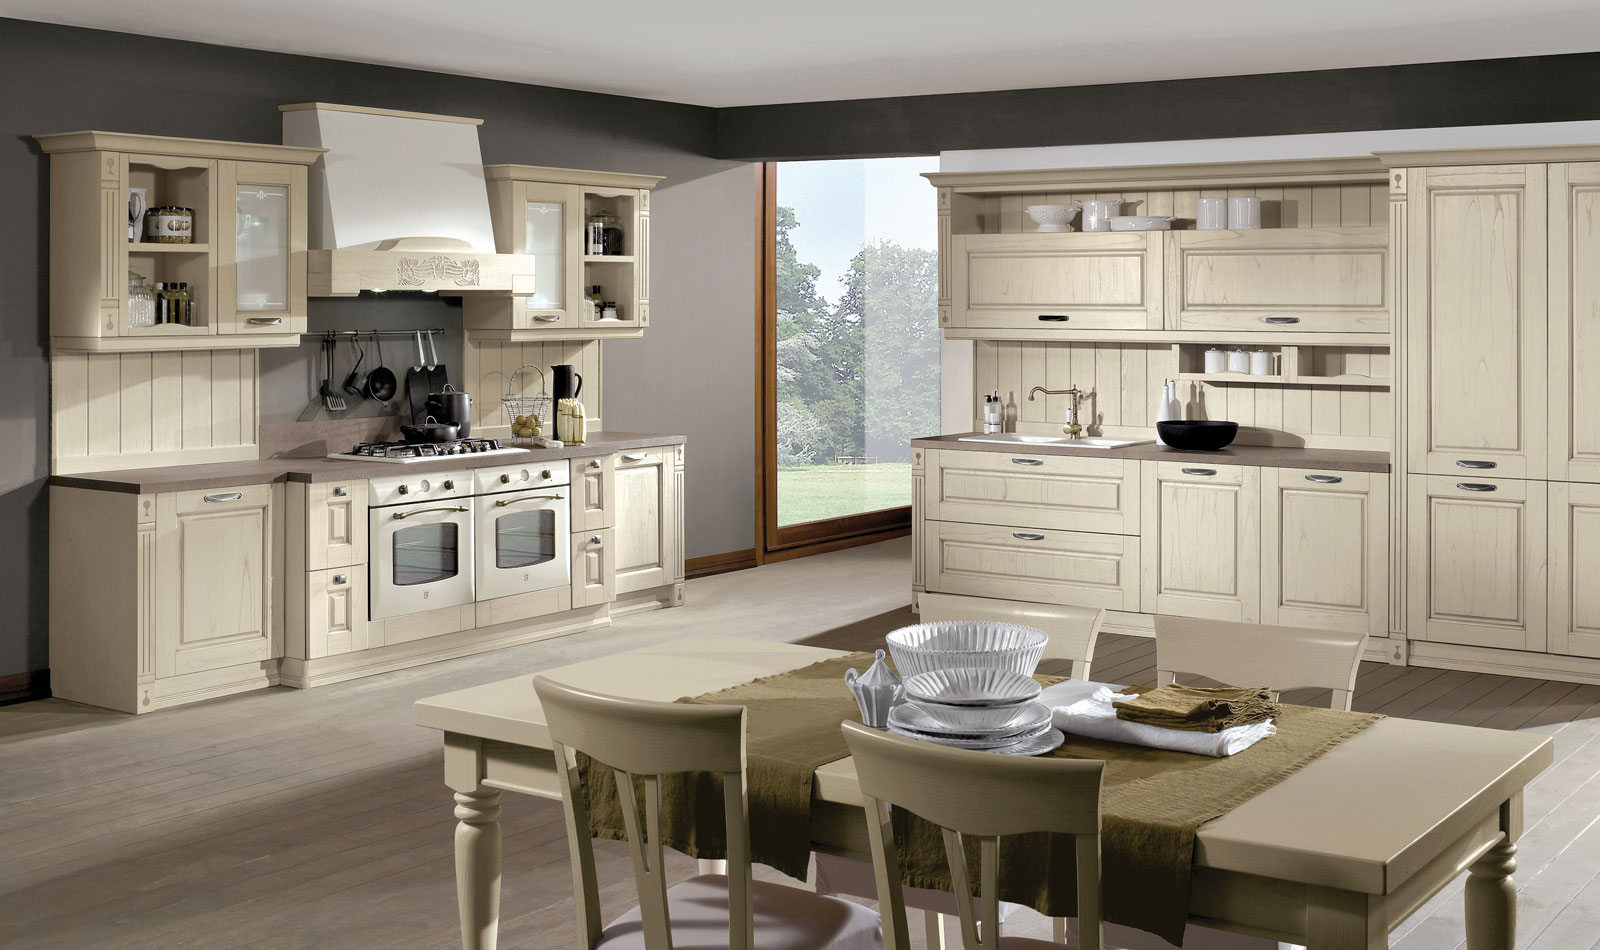 Perfect Cucine Classiche. 00e03cfcdae15549a4401c443363ea55. View Larger.  0cc6ee7aad9efd8aec6f257f826a2668